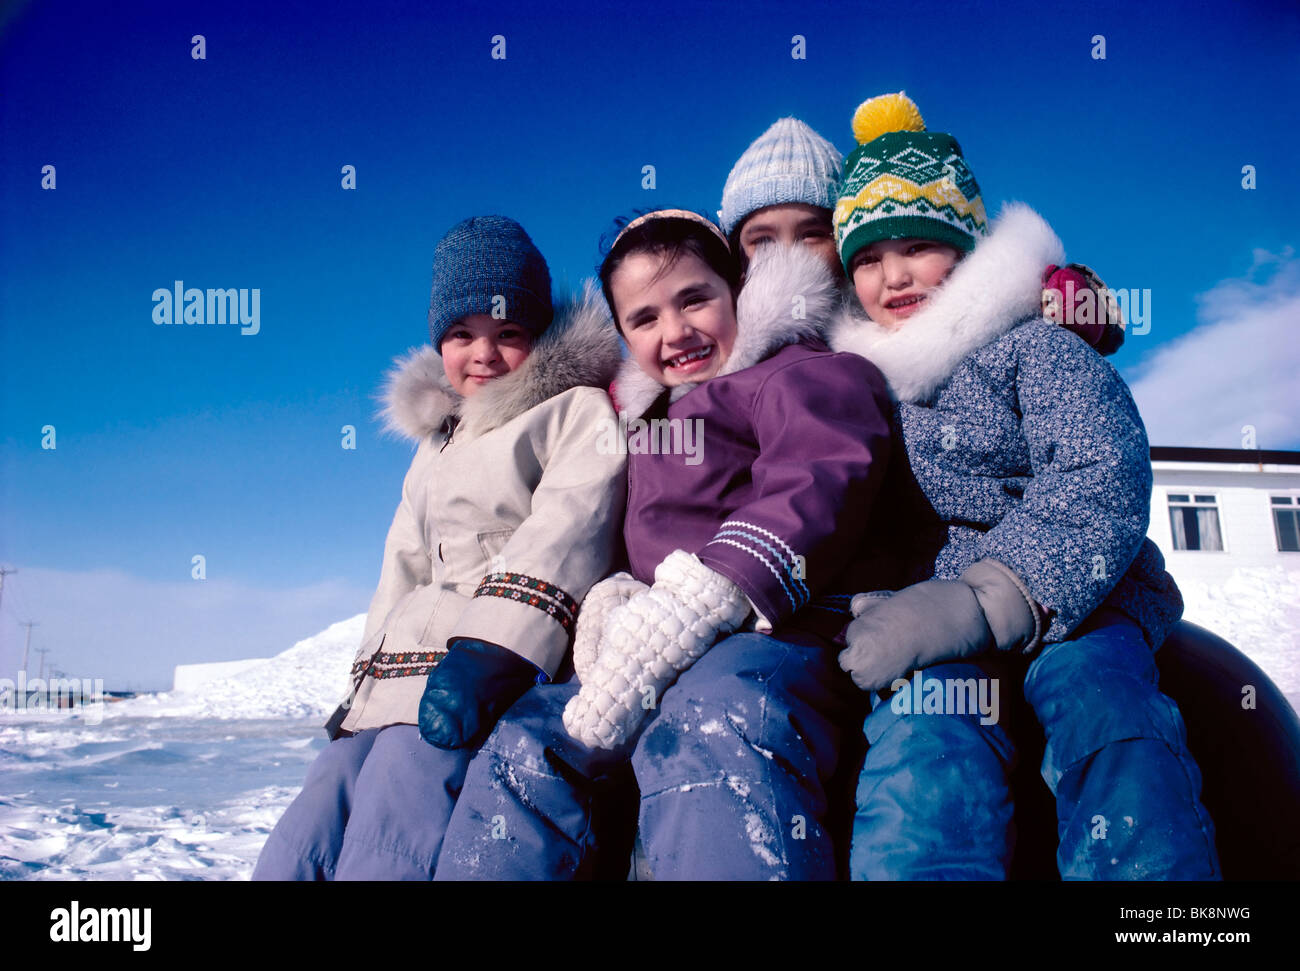 Inuit children pose for a photograph during school recess, Iqaluit, Baffin Island, Nunavut, Canada - Stock Image